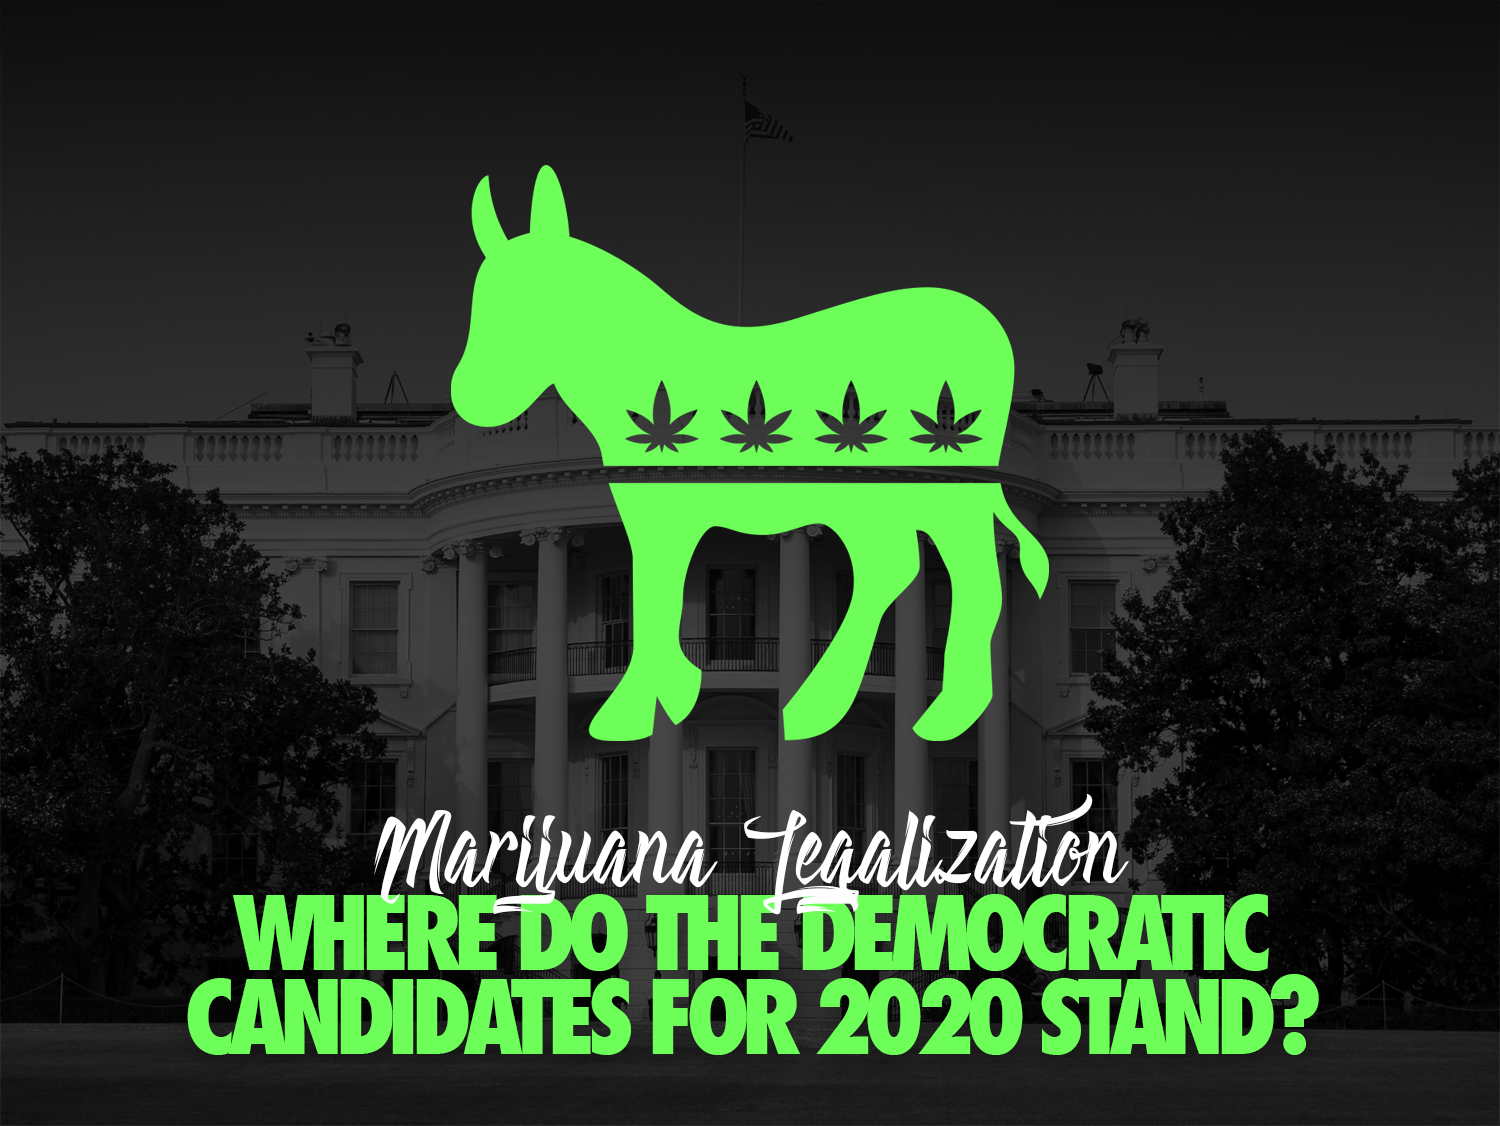 Marijuana Legalization: Where do the Democratic Candidates for 2020 stand?